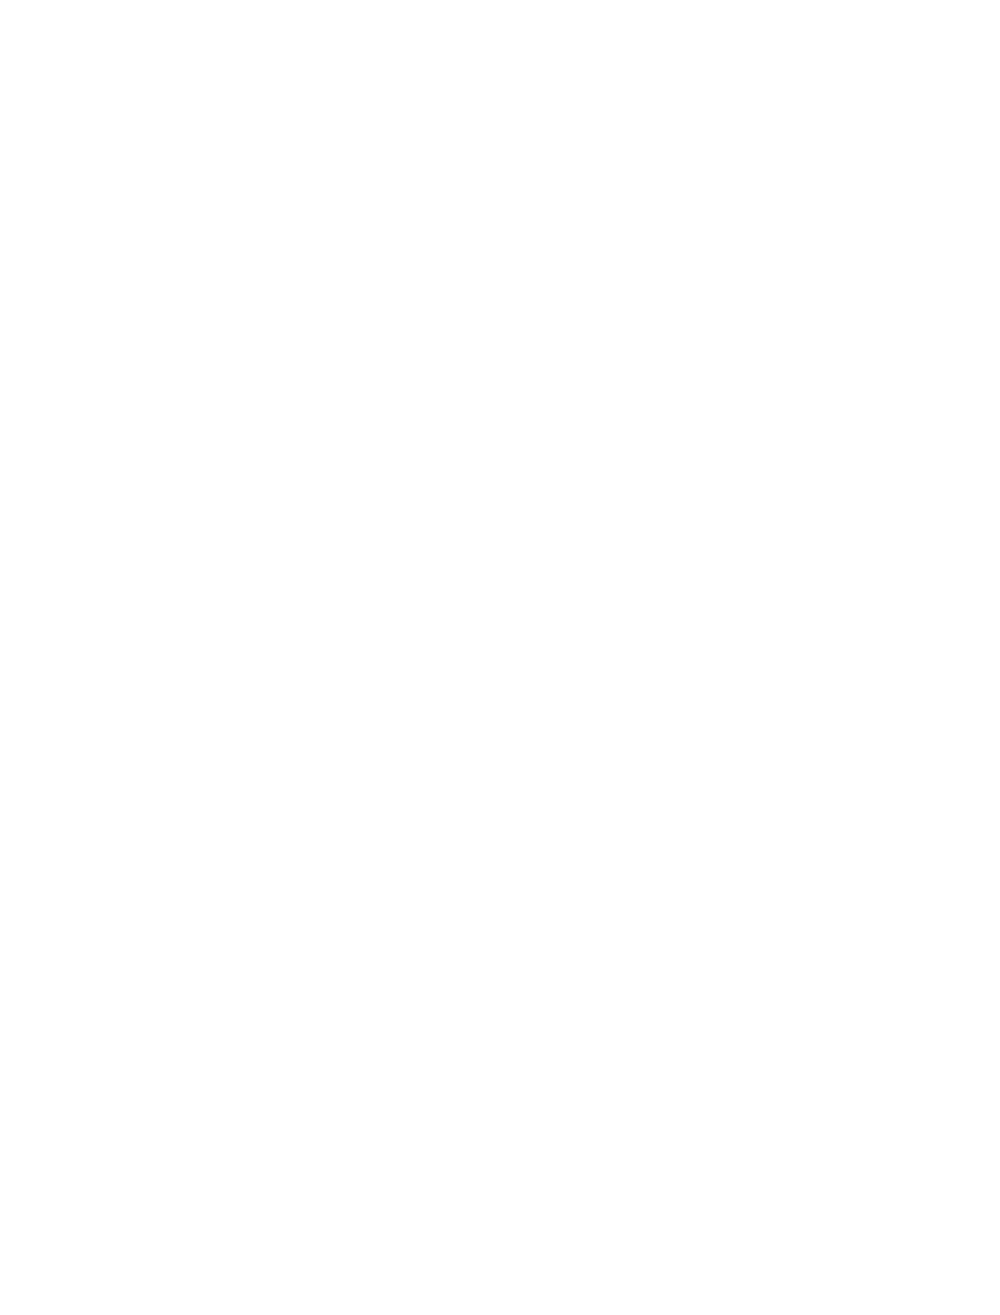 MOON-WHITE.png